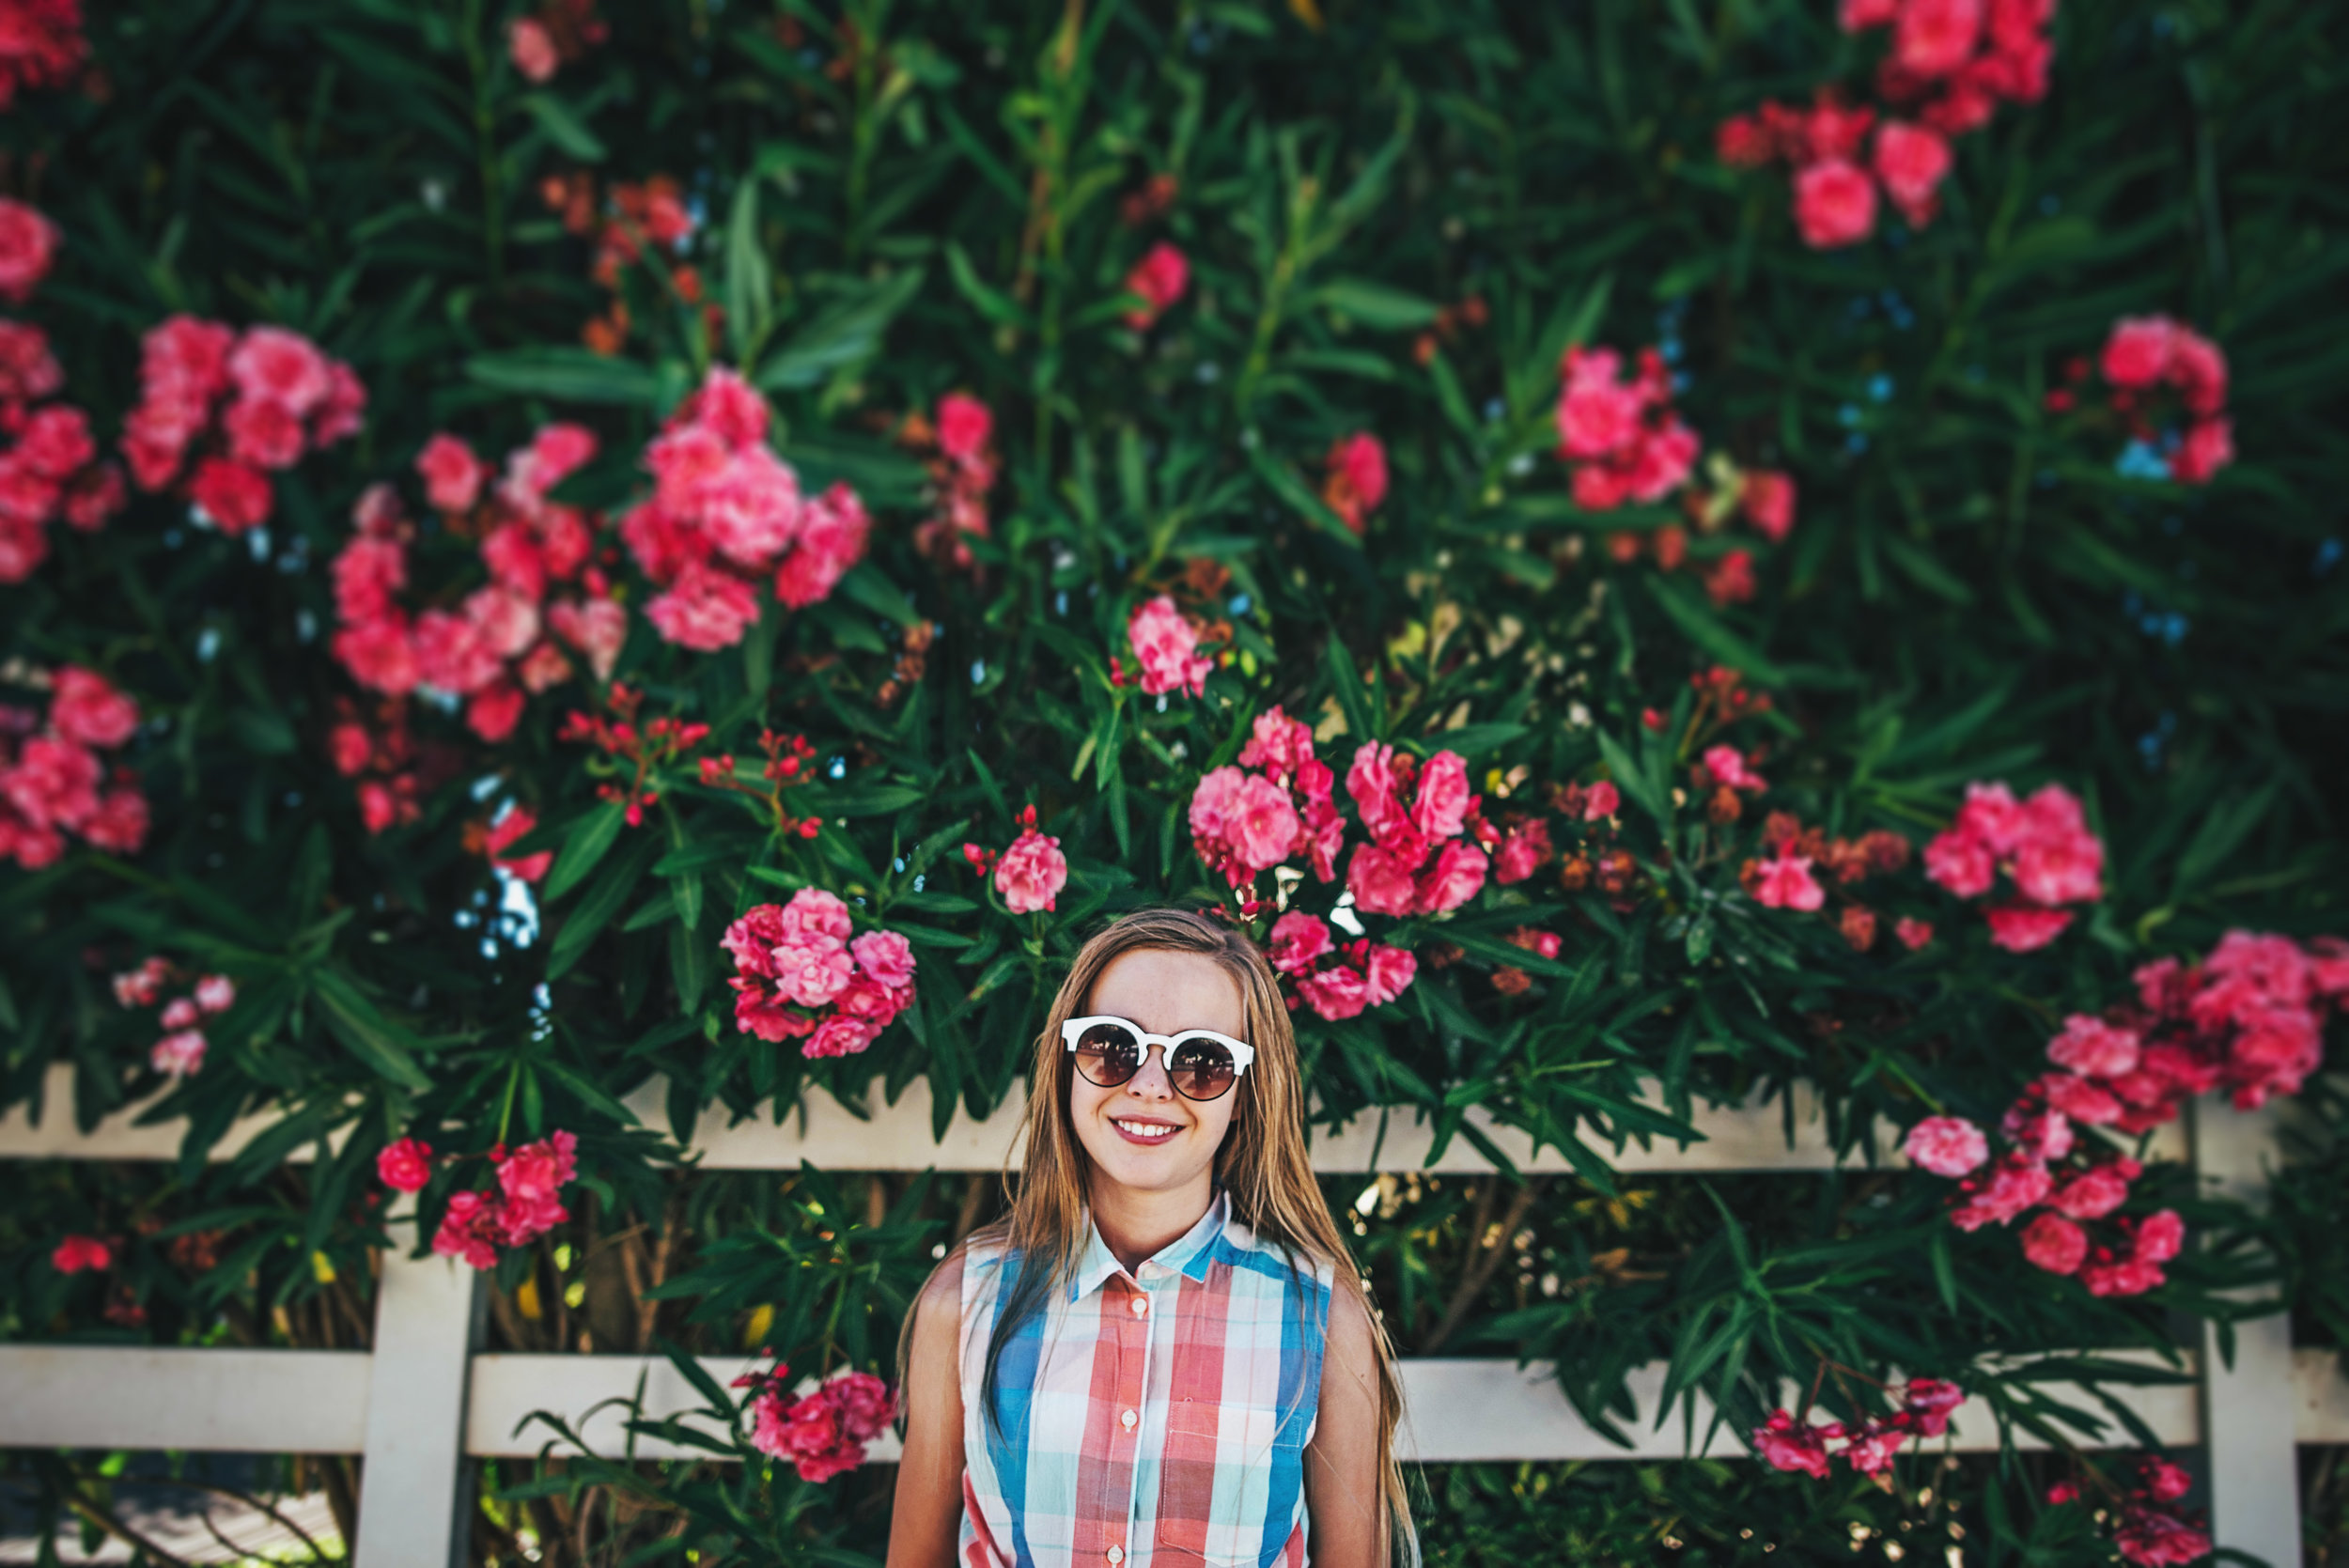 Young girl in sunglasses by pink blossom tree Essex UK Documentary Portrait Photographer